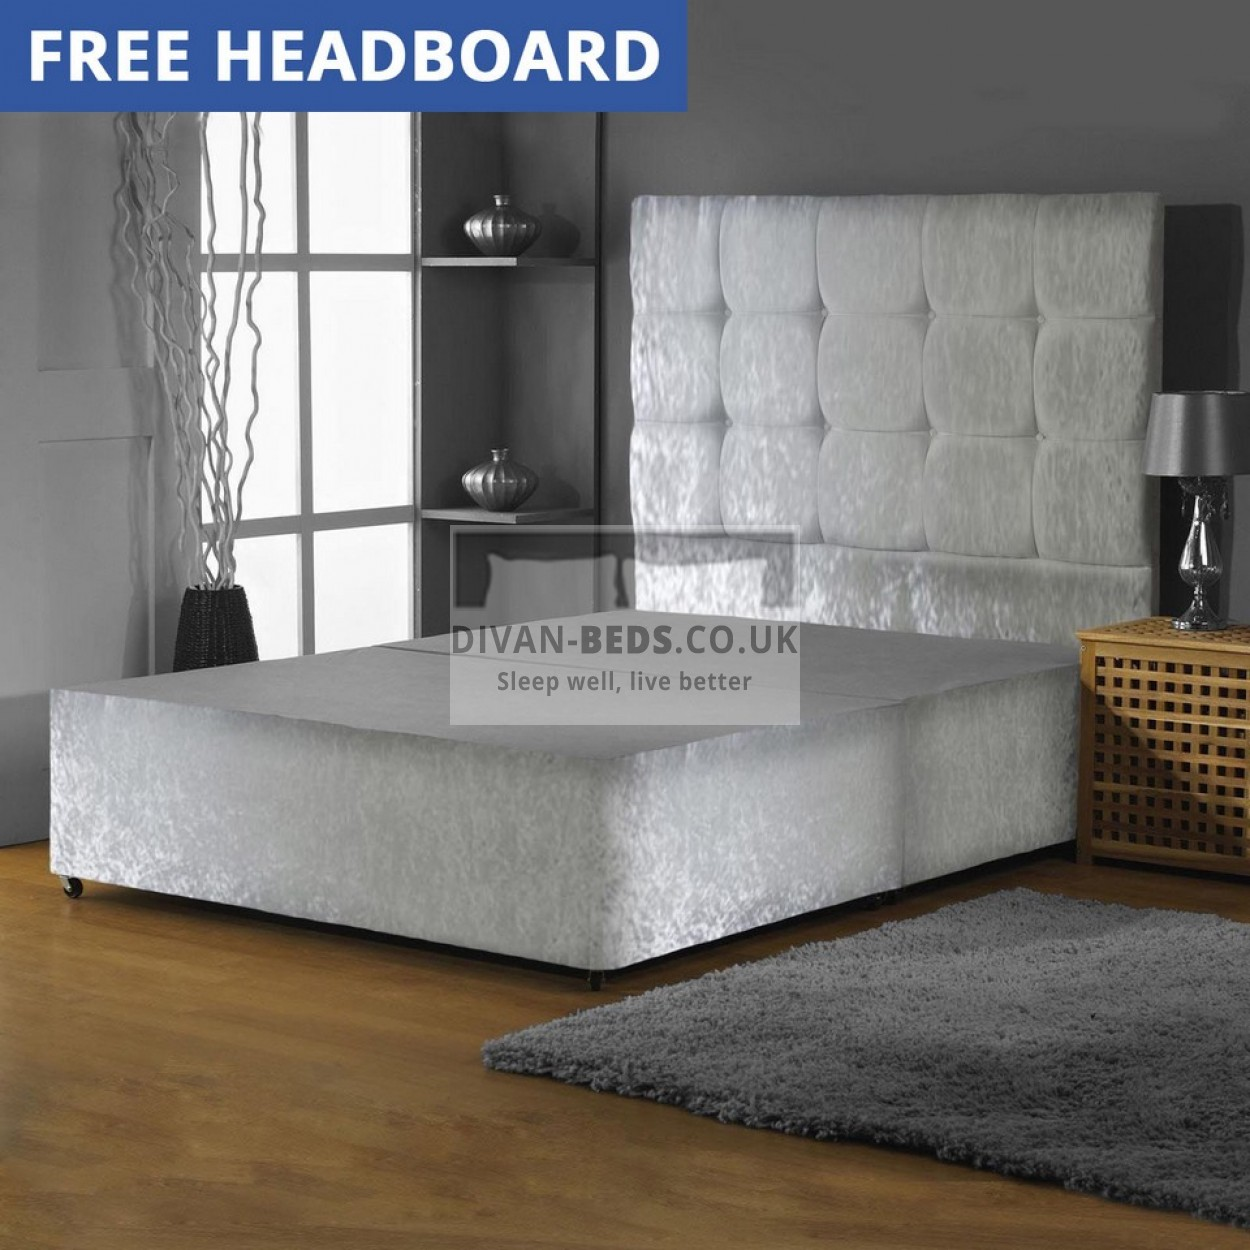 Crushed Velvet Divan Bed Base With High Buttoned Headboard Guaranteed Cheapest Free Fast